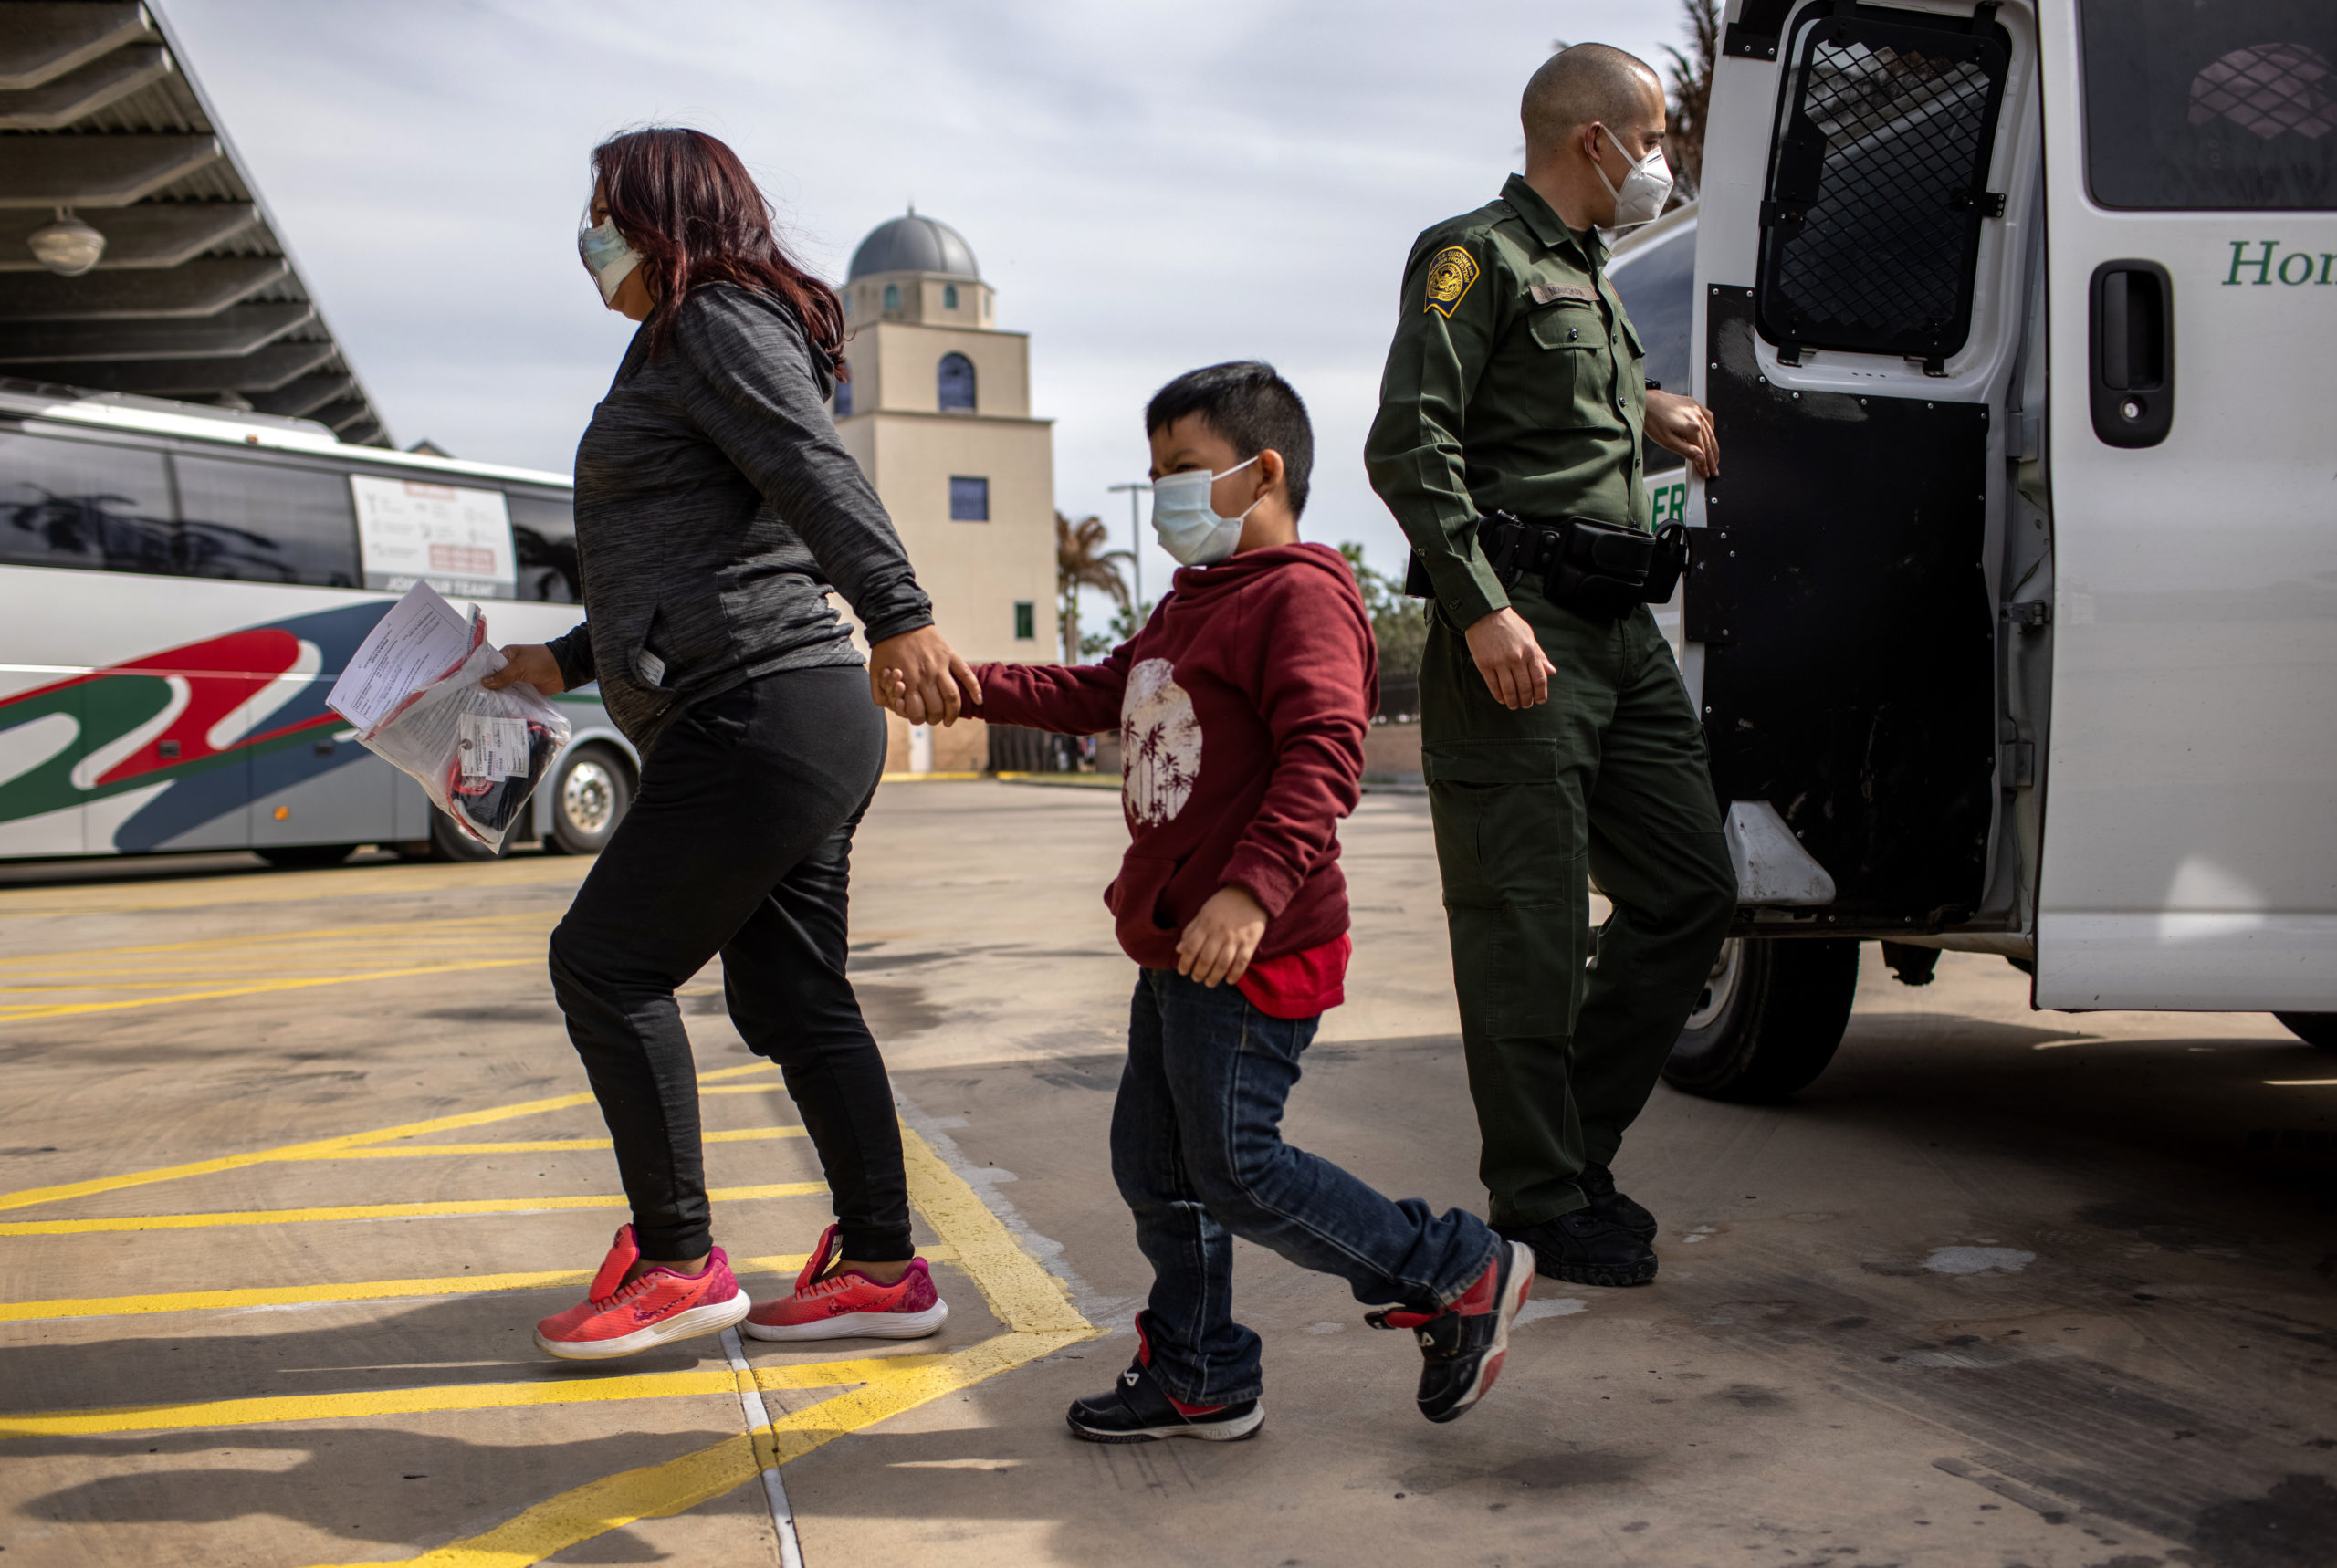 BROWNSVILLE, TEXAS - FEBRUARY 26: Central American asylum seekers arrive to a bus station while being released by U.S. Border Patrol agents on February 26, 2021 in Brownsville, Texas. U.S. immigration authorities are now releasing many asylum seeking families after detaining them while crossing the U.S.-Mexico border. The immigrant families are then free to travel to destinations throughout the U.S. while awaiting asylum hearings. (Photo by John Moore/Getty Images)